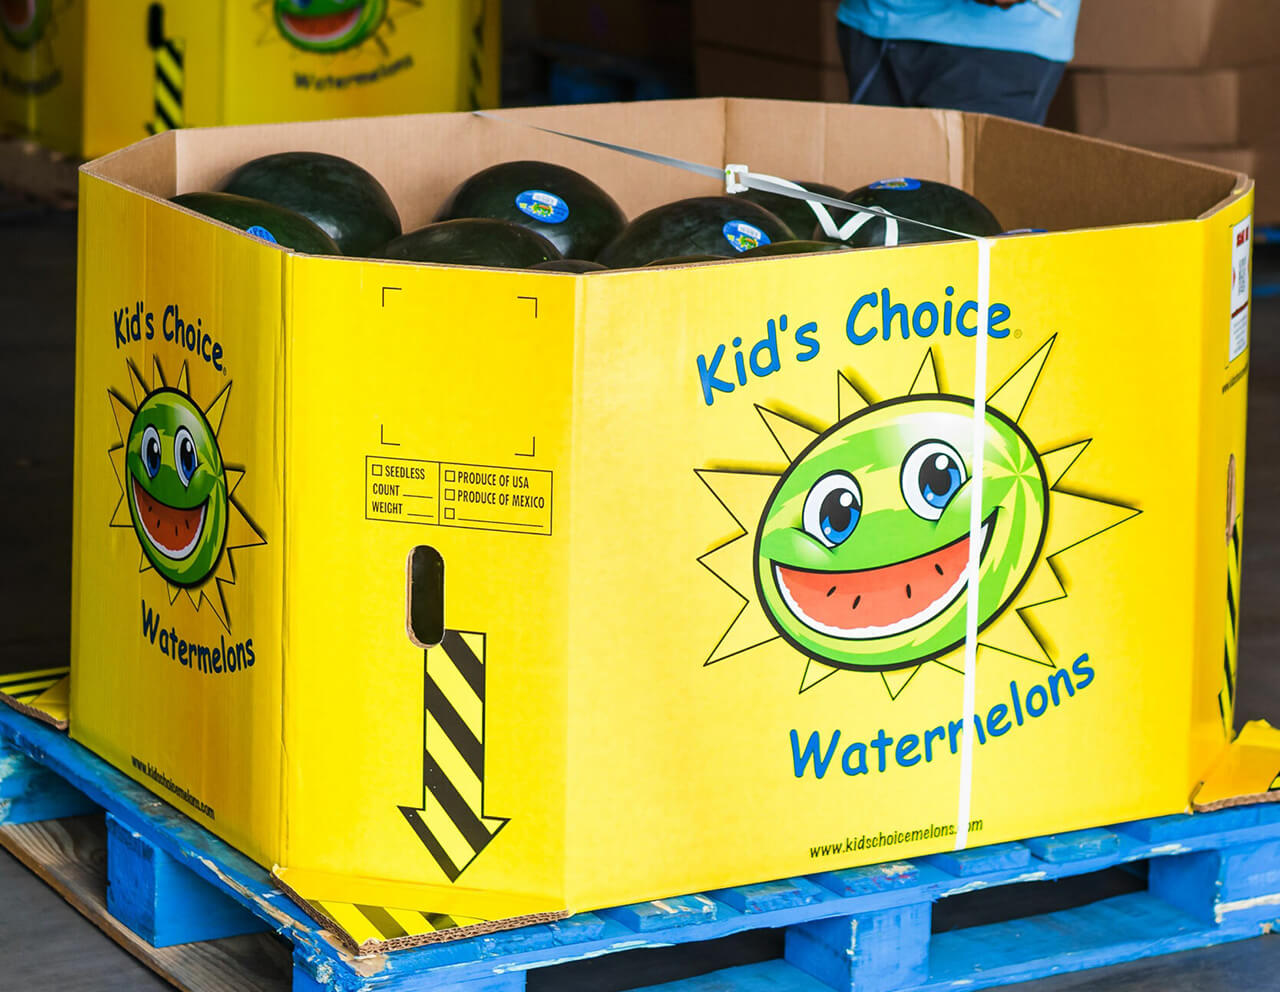 Kids Choice Watermelons Gallery look for our yellow boxes